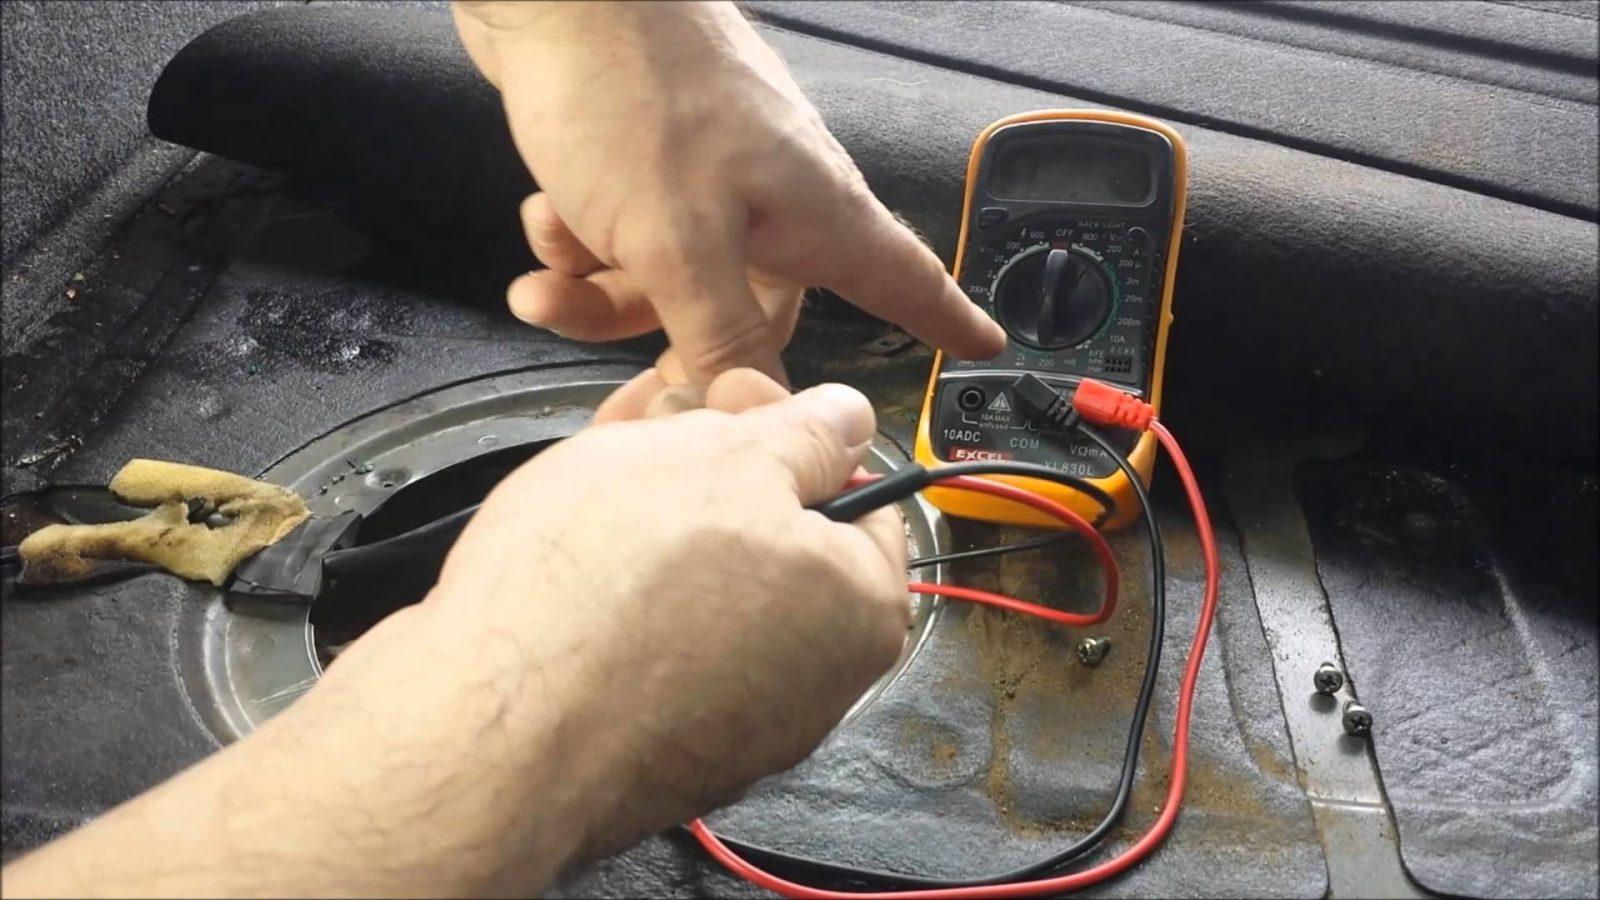 How To Check Fuel Pressure For Pump Testing Car From Japan Subaru Forester Filter Location